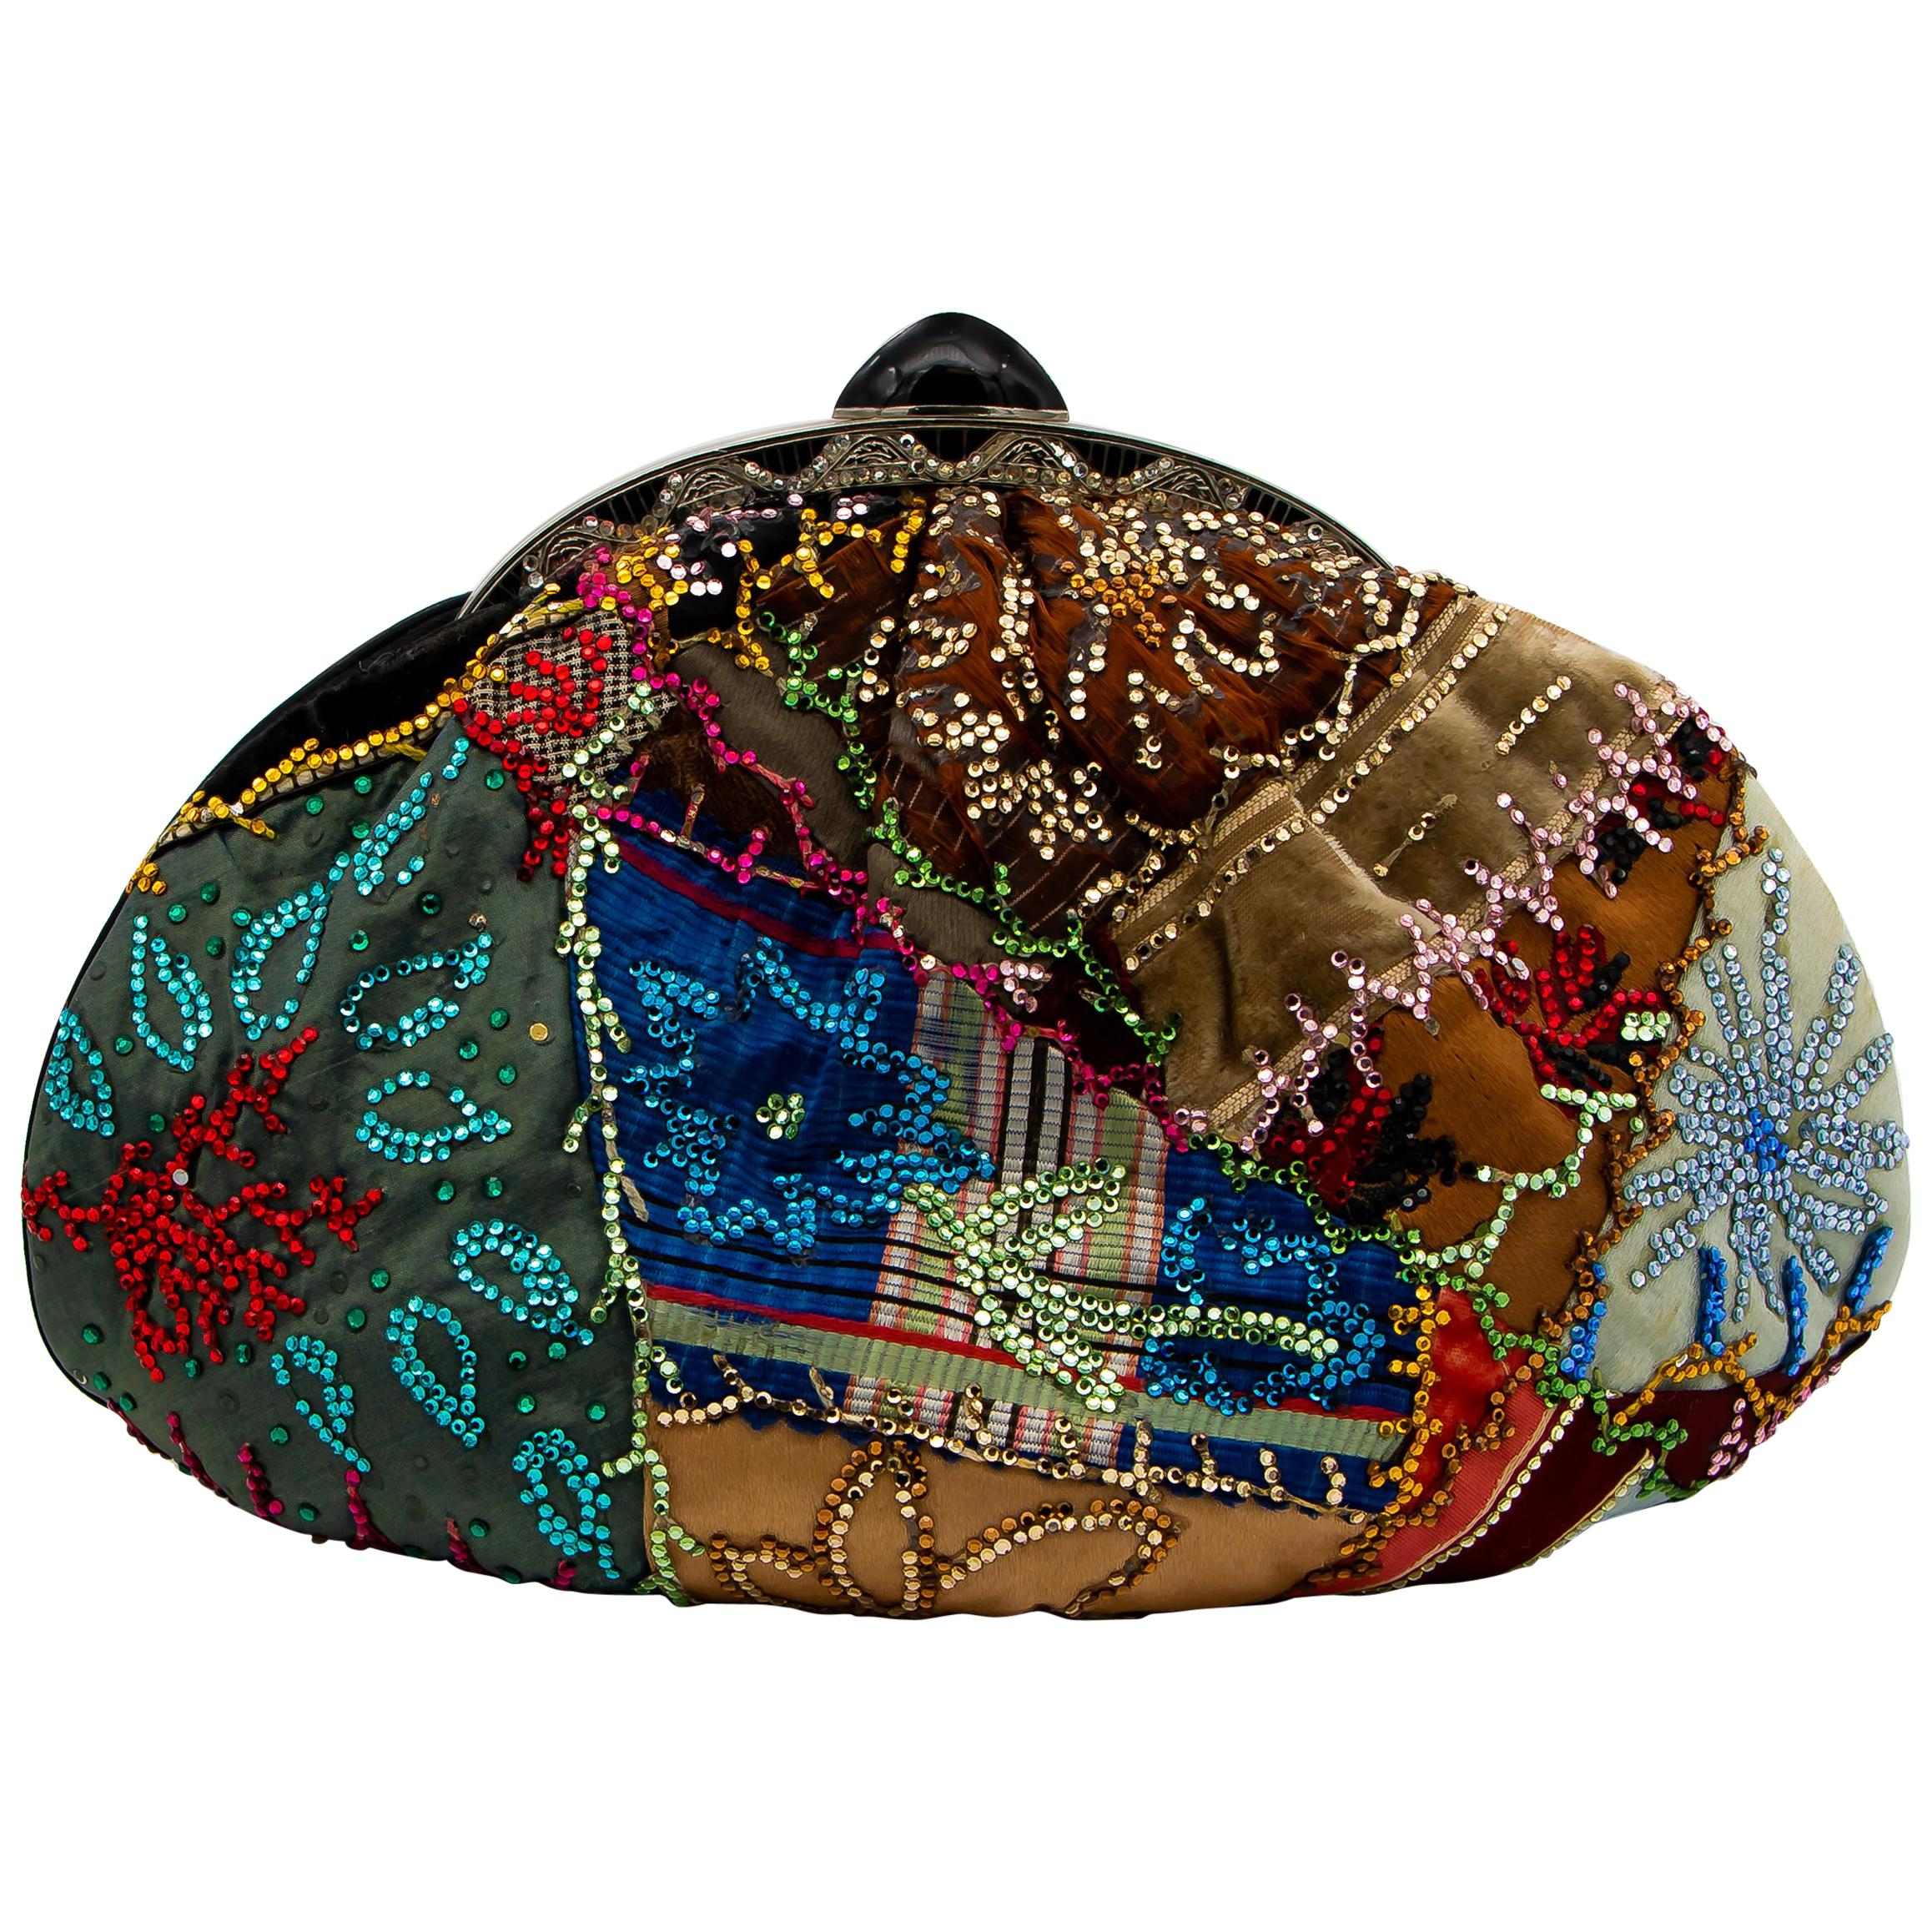 Judith Leiber Collectible Couture Bag Two Sided Beaded Pattern Made In Italy